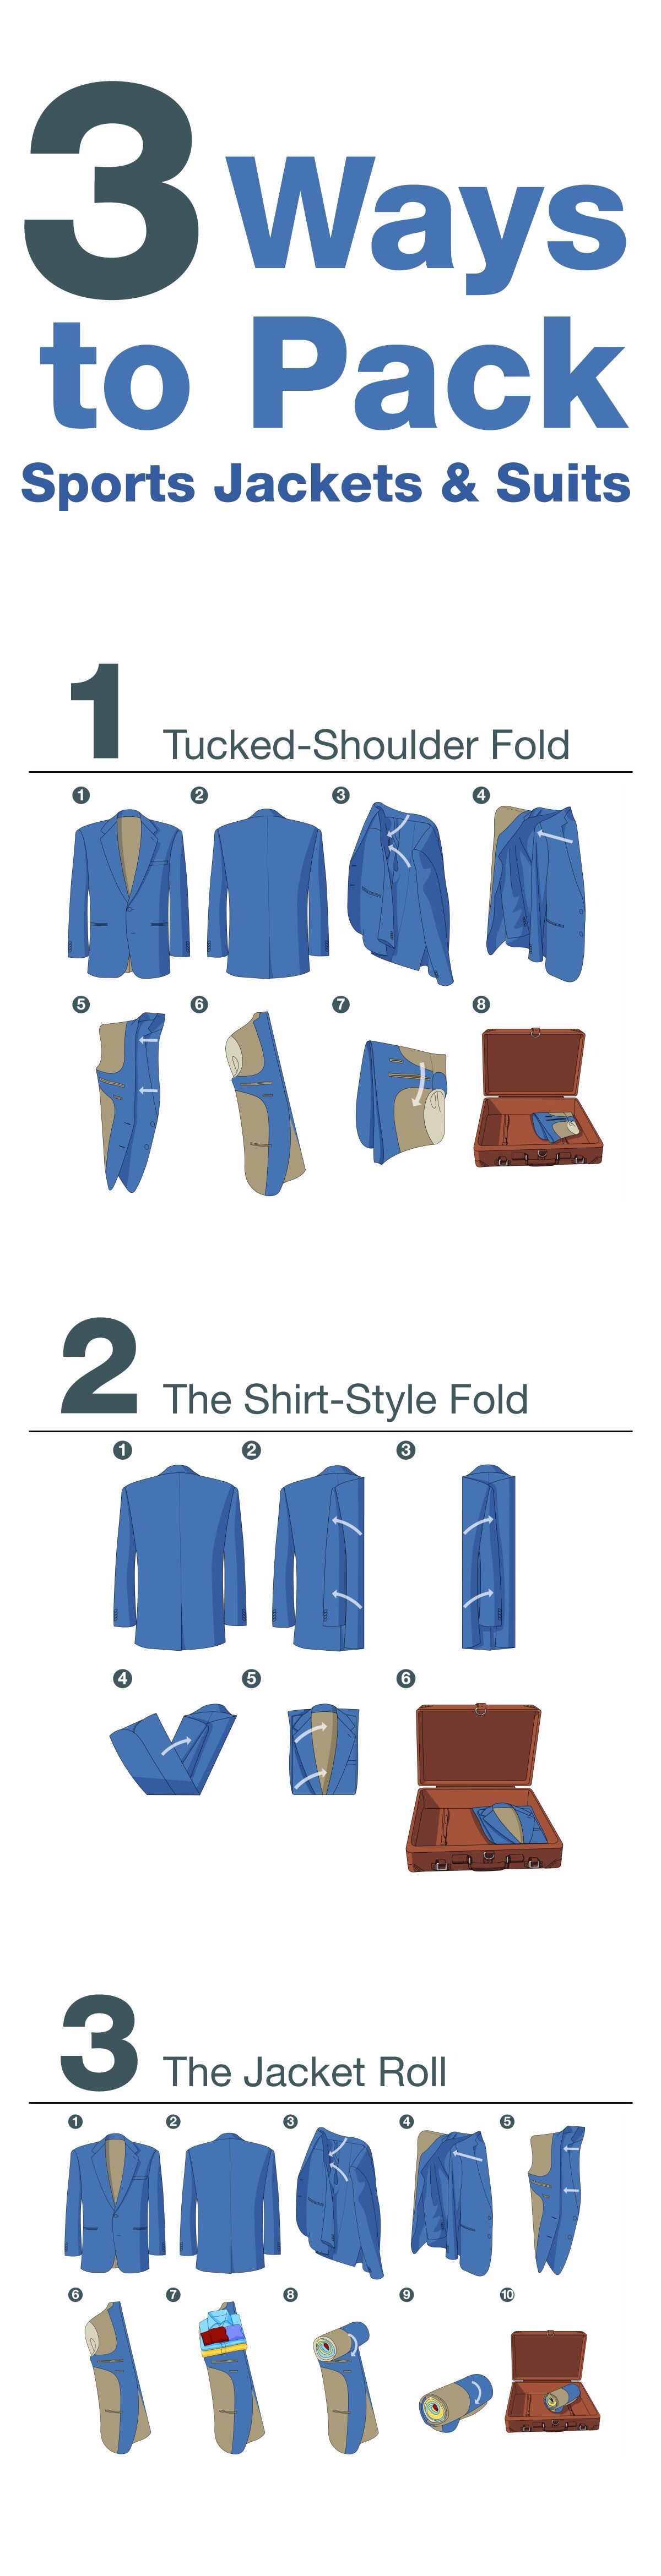 Best way to fold clothes for a trip - 3 Ways To Pack Sports Jackets And Suits For All The Guys Who Travel This Is A Thoughtful Reminder Of How To Pack Also When You Put Your Jacket In The